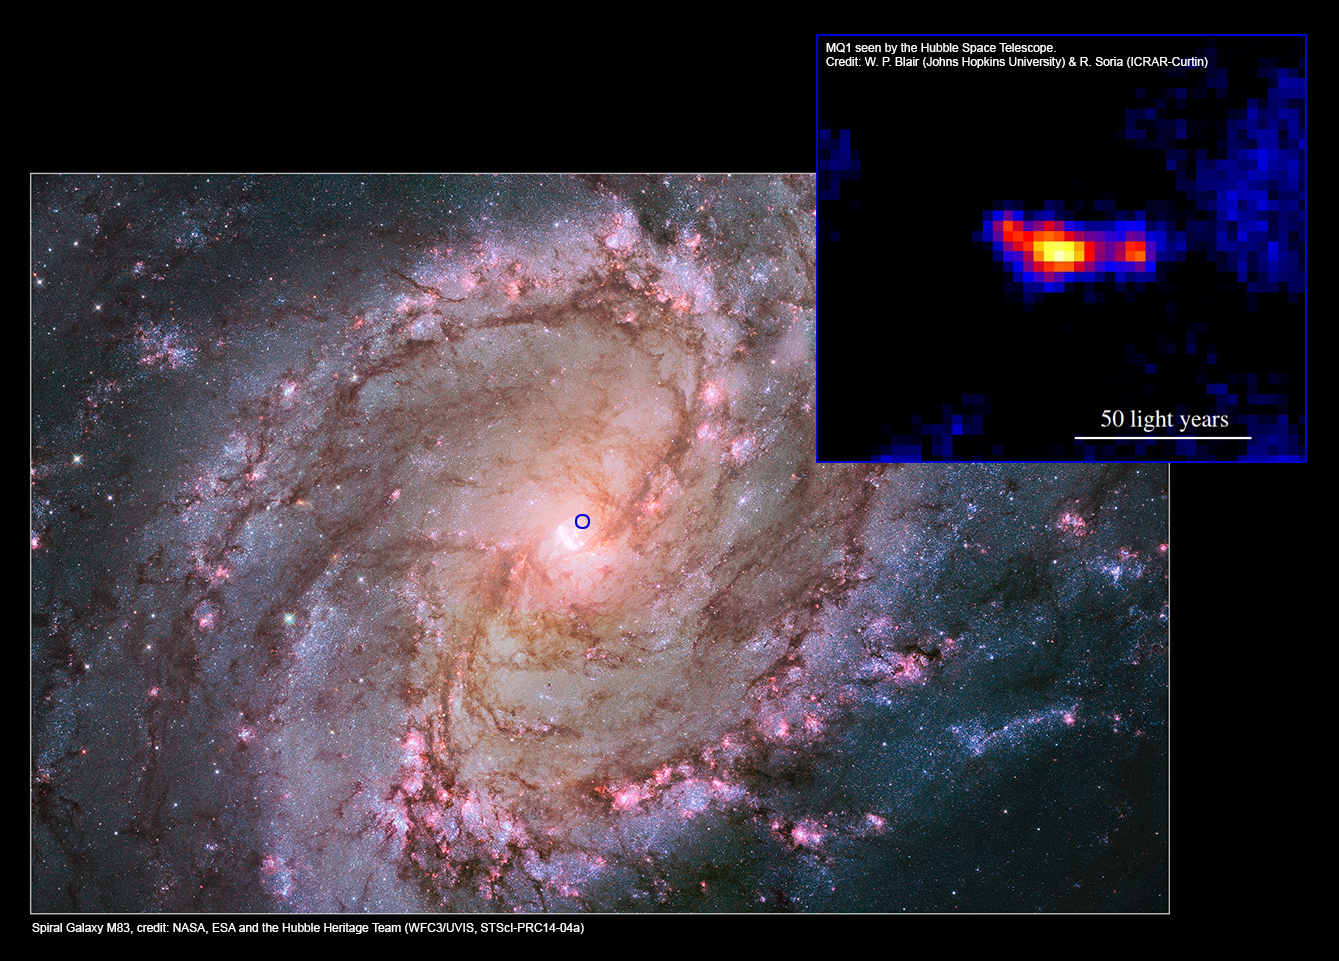 Nearby spiral galaxy M83 and the MQ1 system with jets, as seen by the Hubble Space Telescope. The blue circle marks the position of the MQ1 system in the galaxy (shown inset). Image Credits: M83 - NASA, ESA and the Hubble Heritage Team (WFC3/UVIS, STScI-PRC14-04a).MQ1 inset - W. P. Blair (Johns Hopkins University) & R. Soria (ICRAR-Curtin).